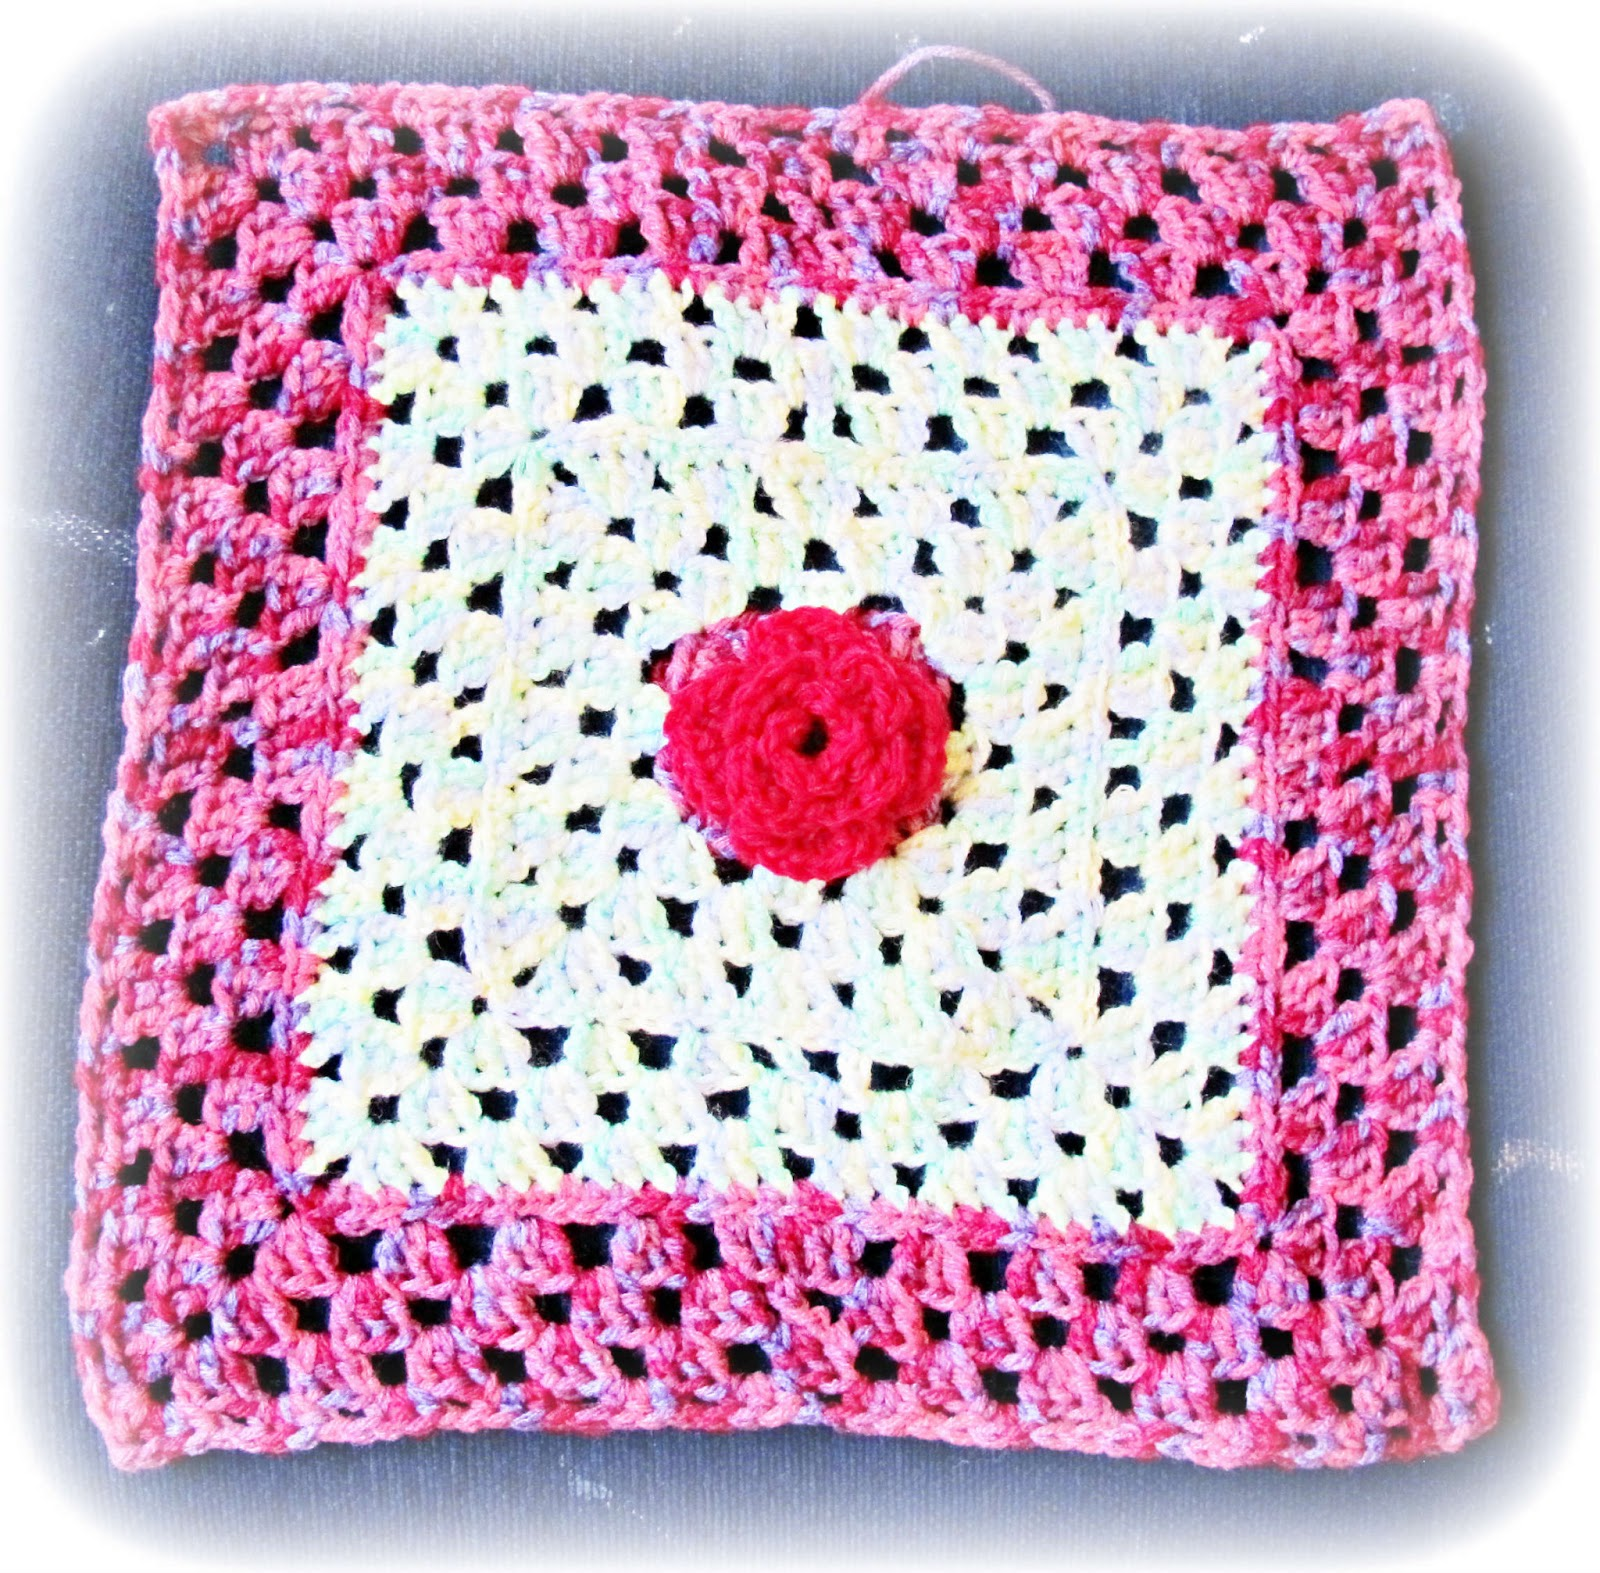 image 12 twelve inch crochet square rose flower nicki trench cute and easy crochet